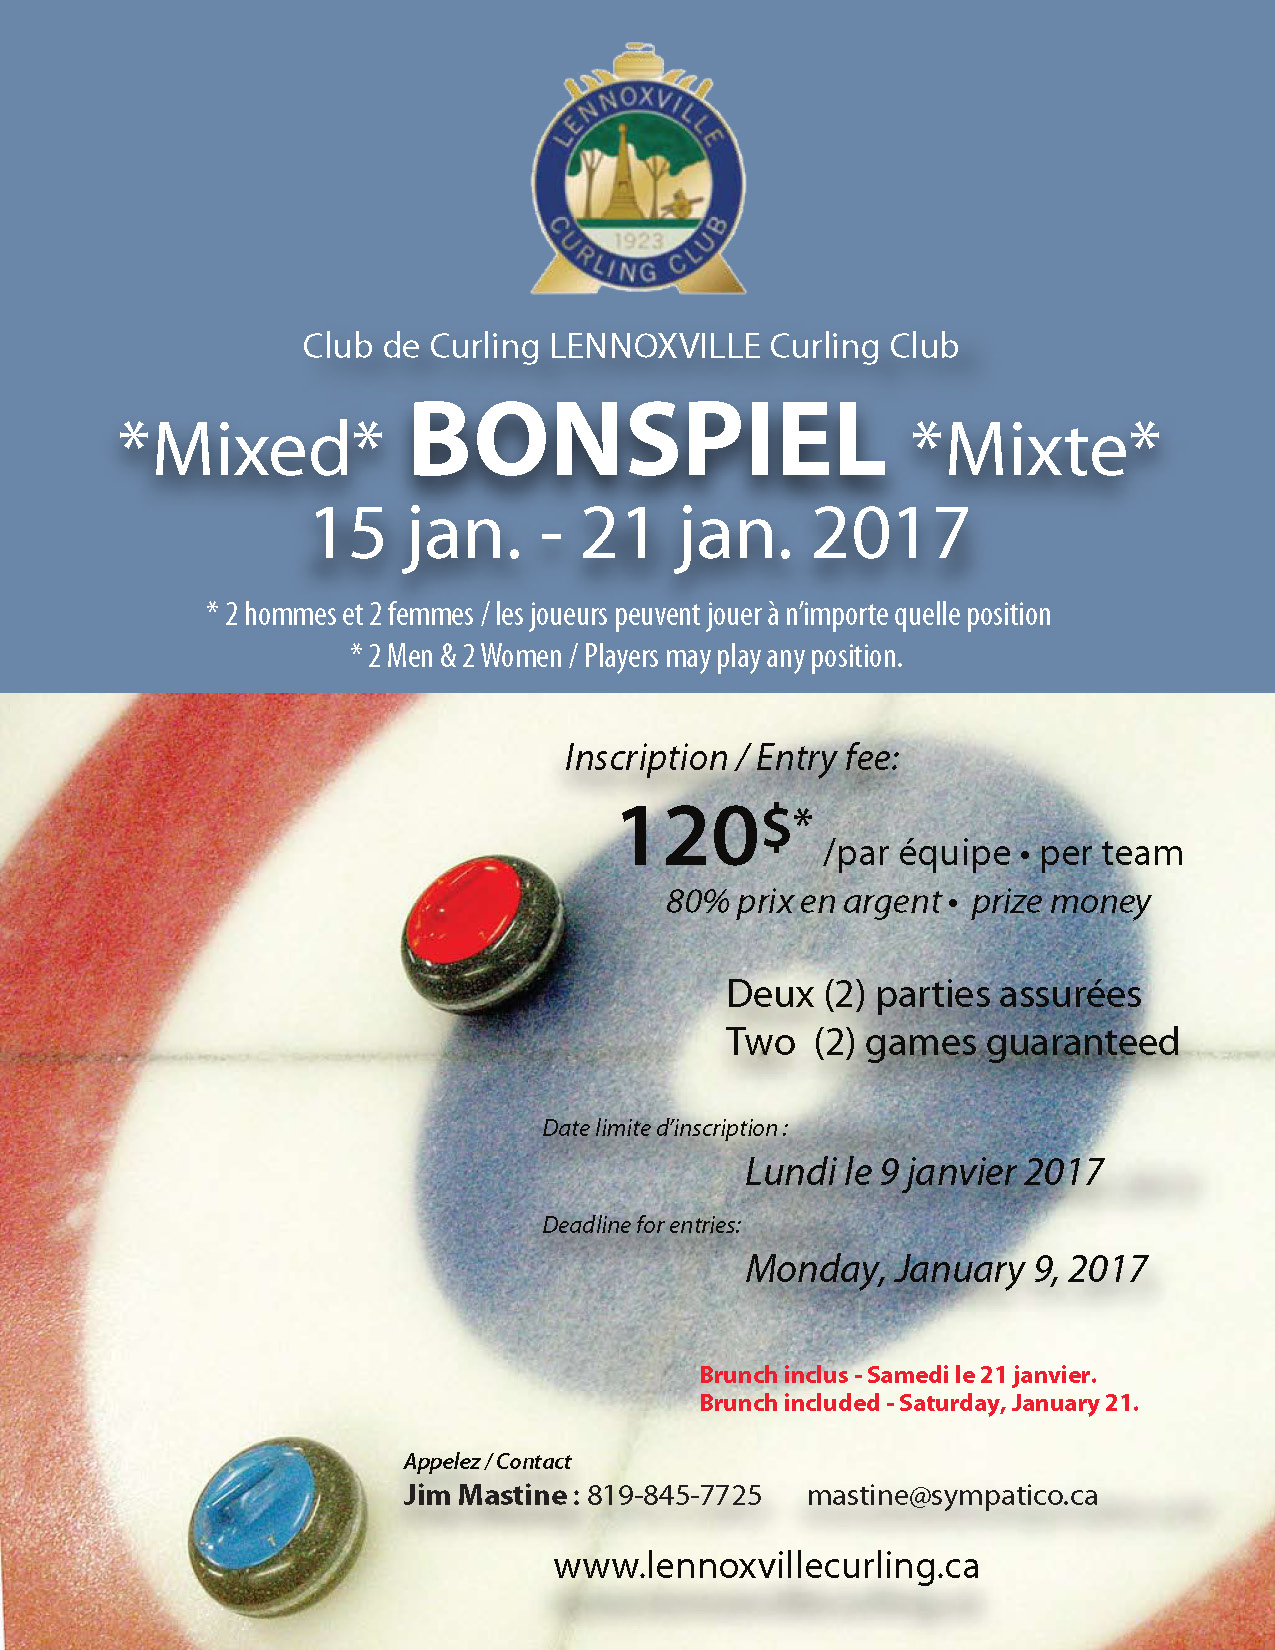 Club de curling Lennoxville